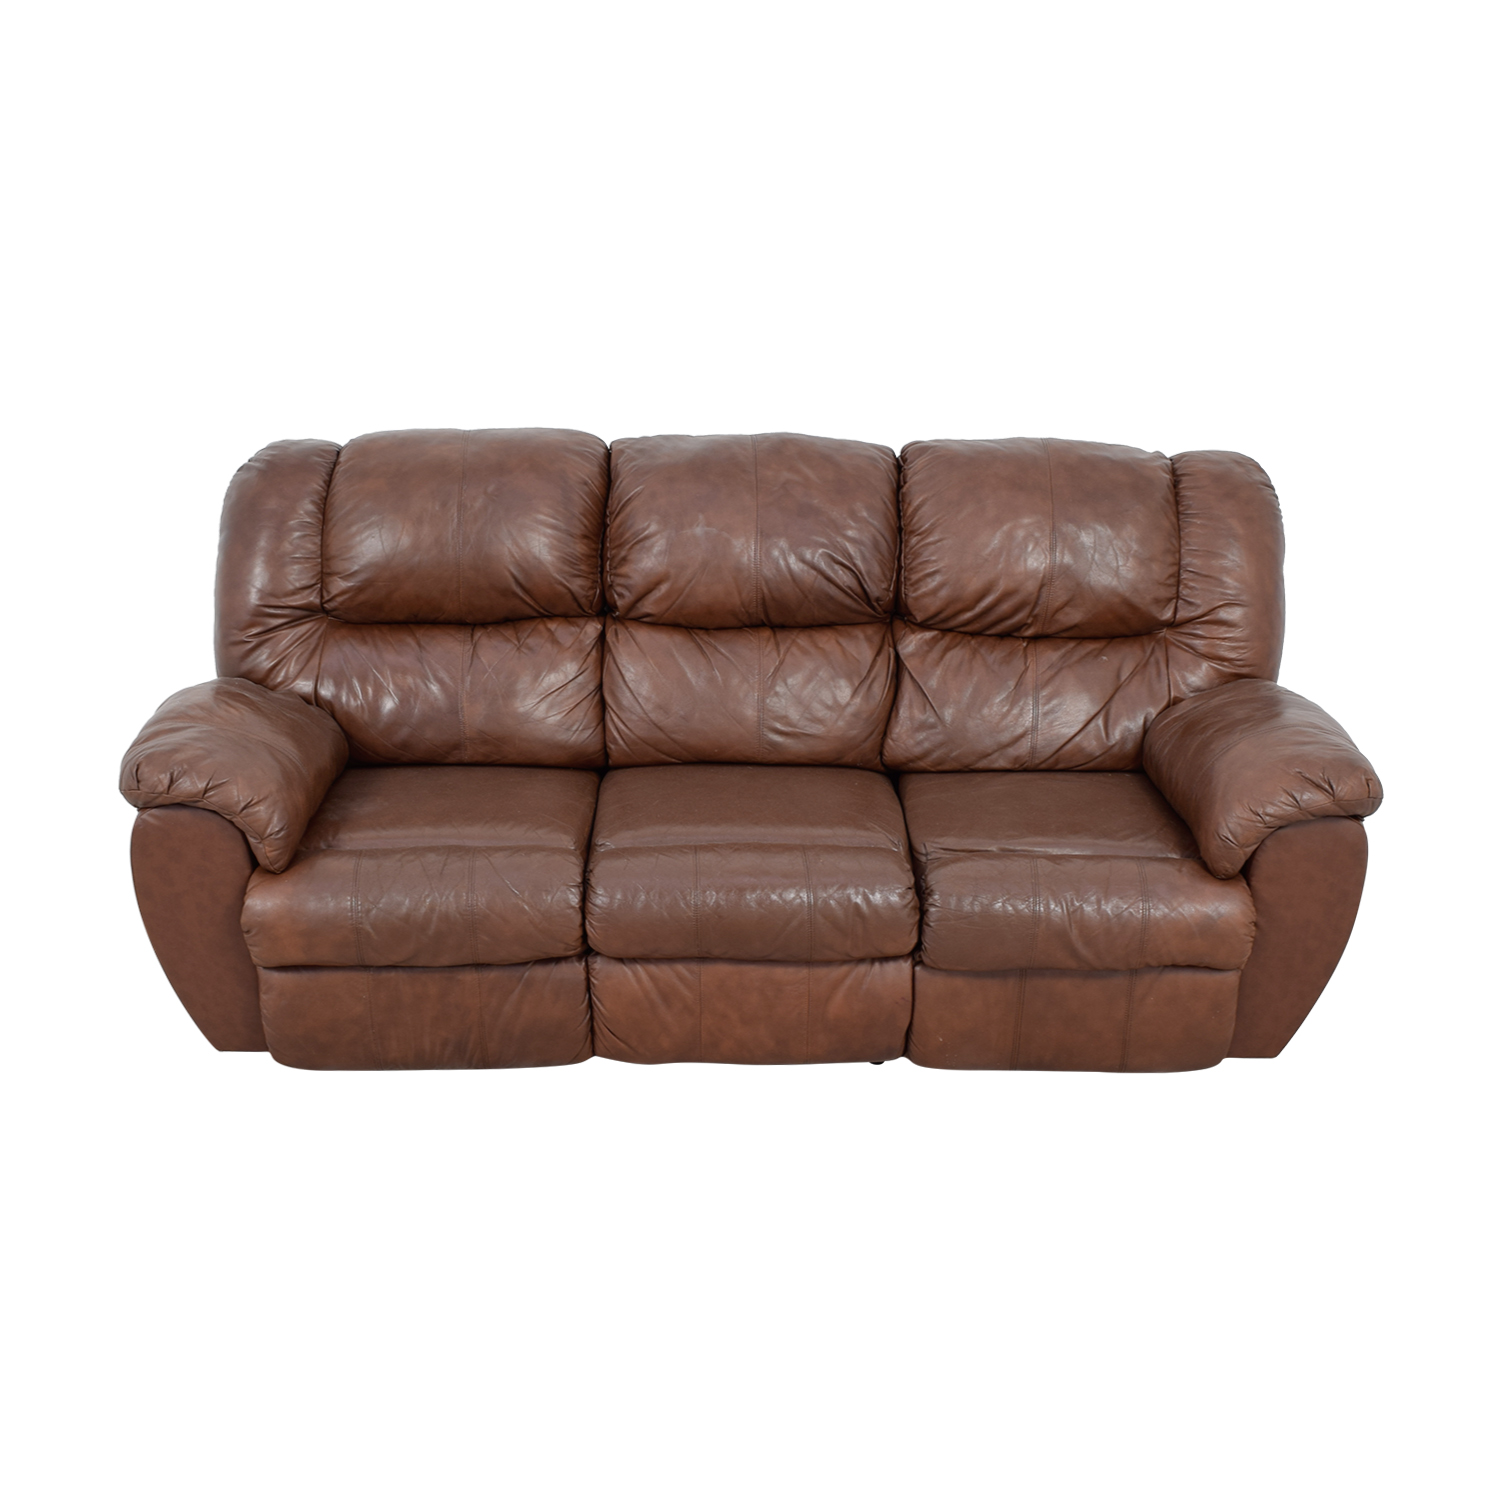 80% OFF - Ashley Furniture Ashley Furniture Dual Reclining Brown Leather  Couch / Sofas